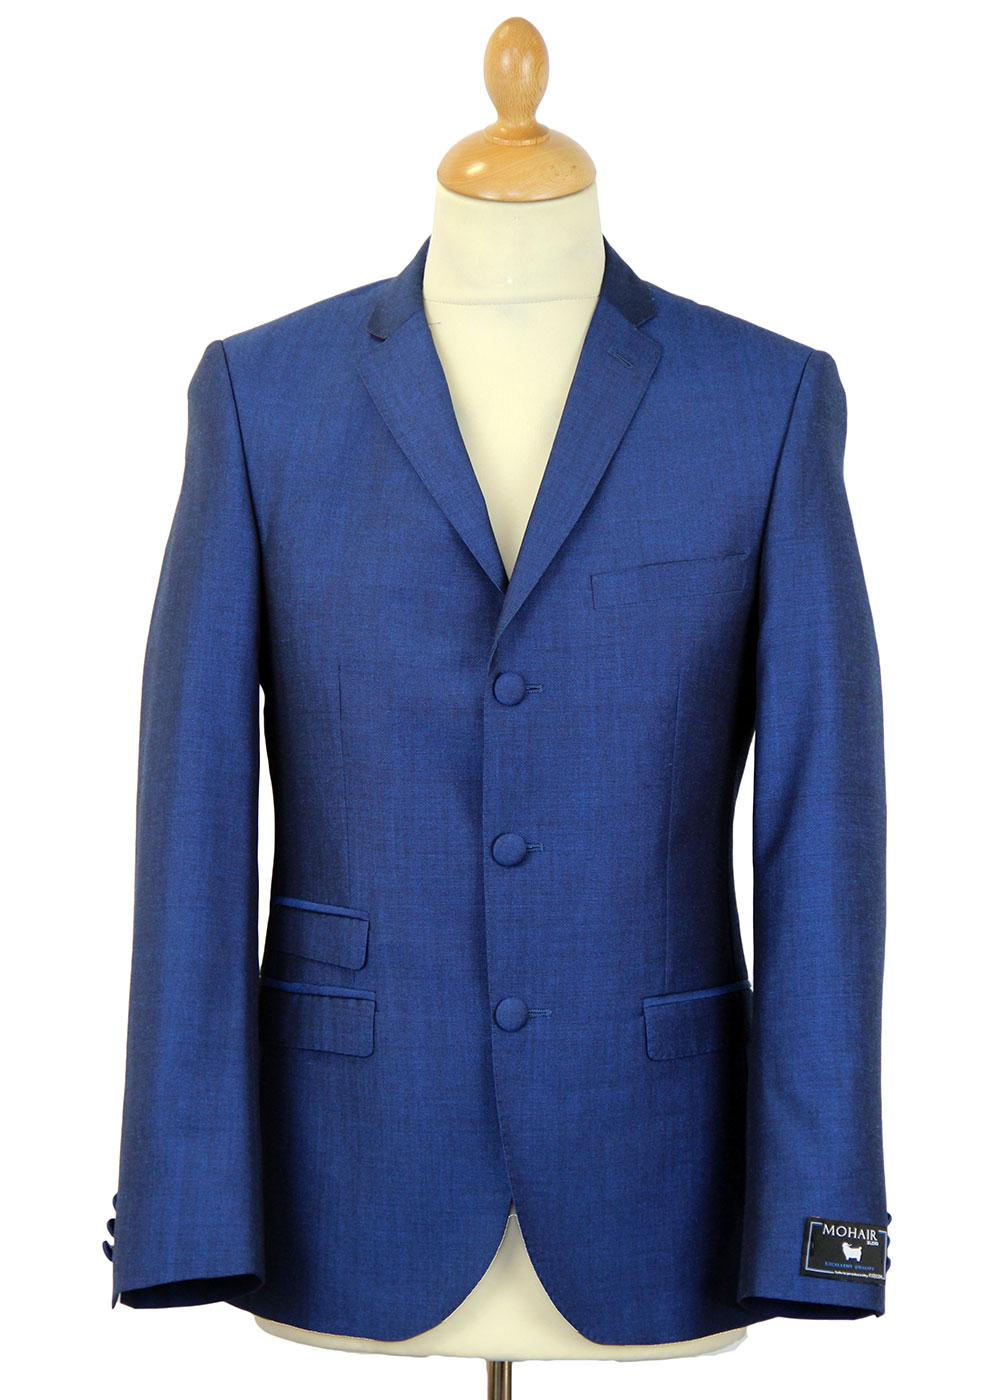 MADCAP ENGLAND Mohair Tonic 3 Button Suit Jacket B